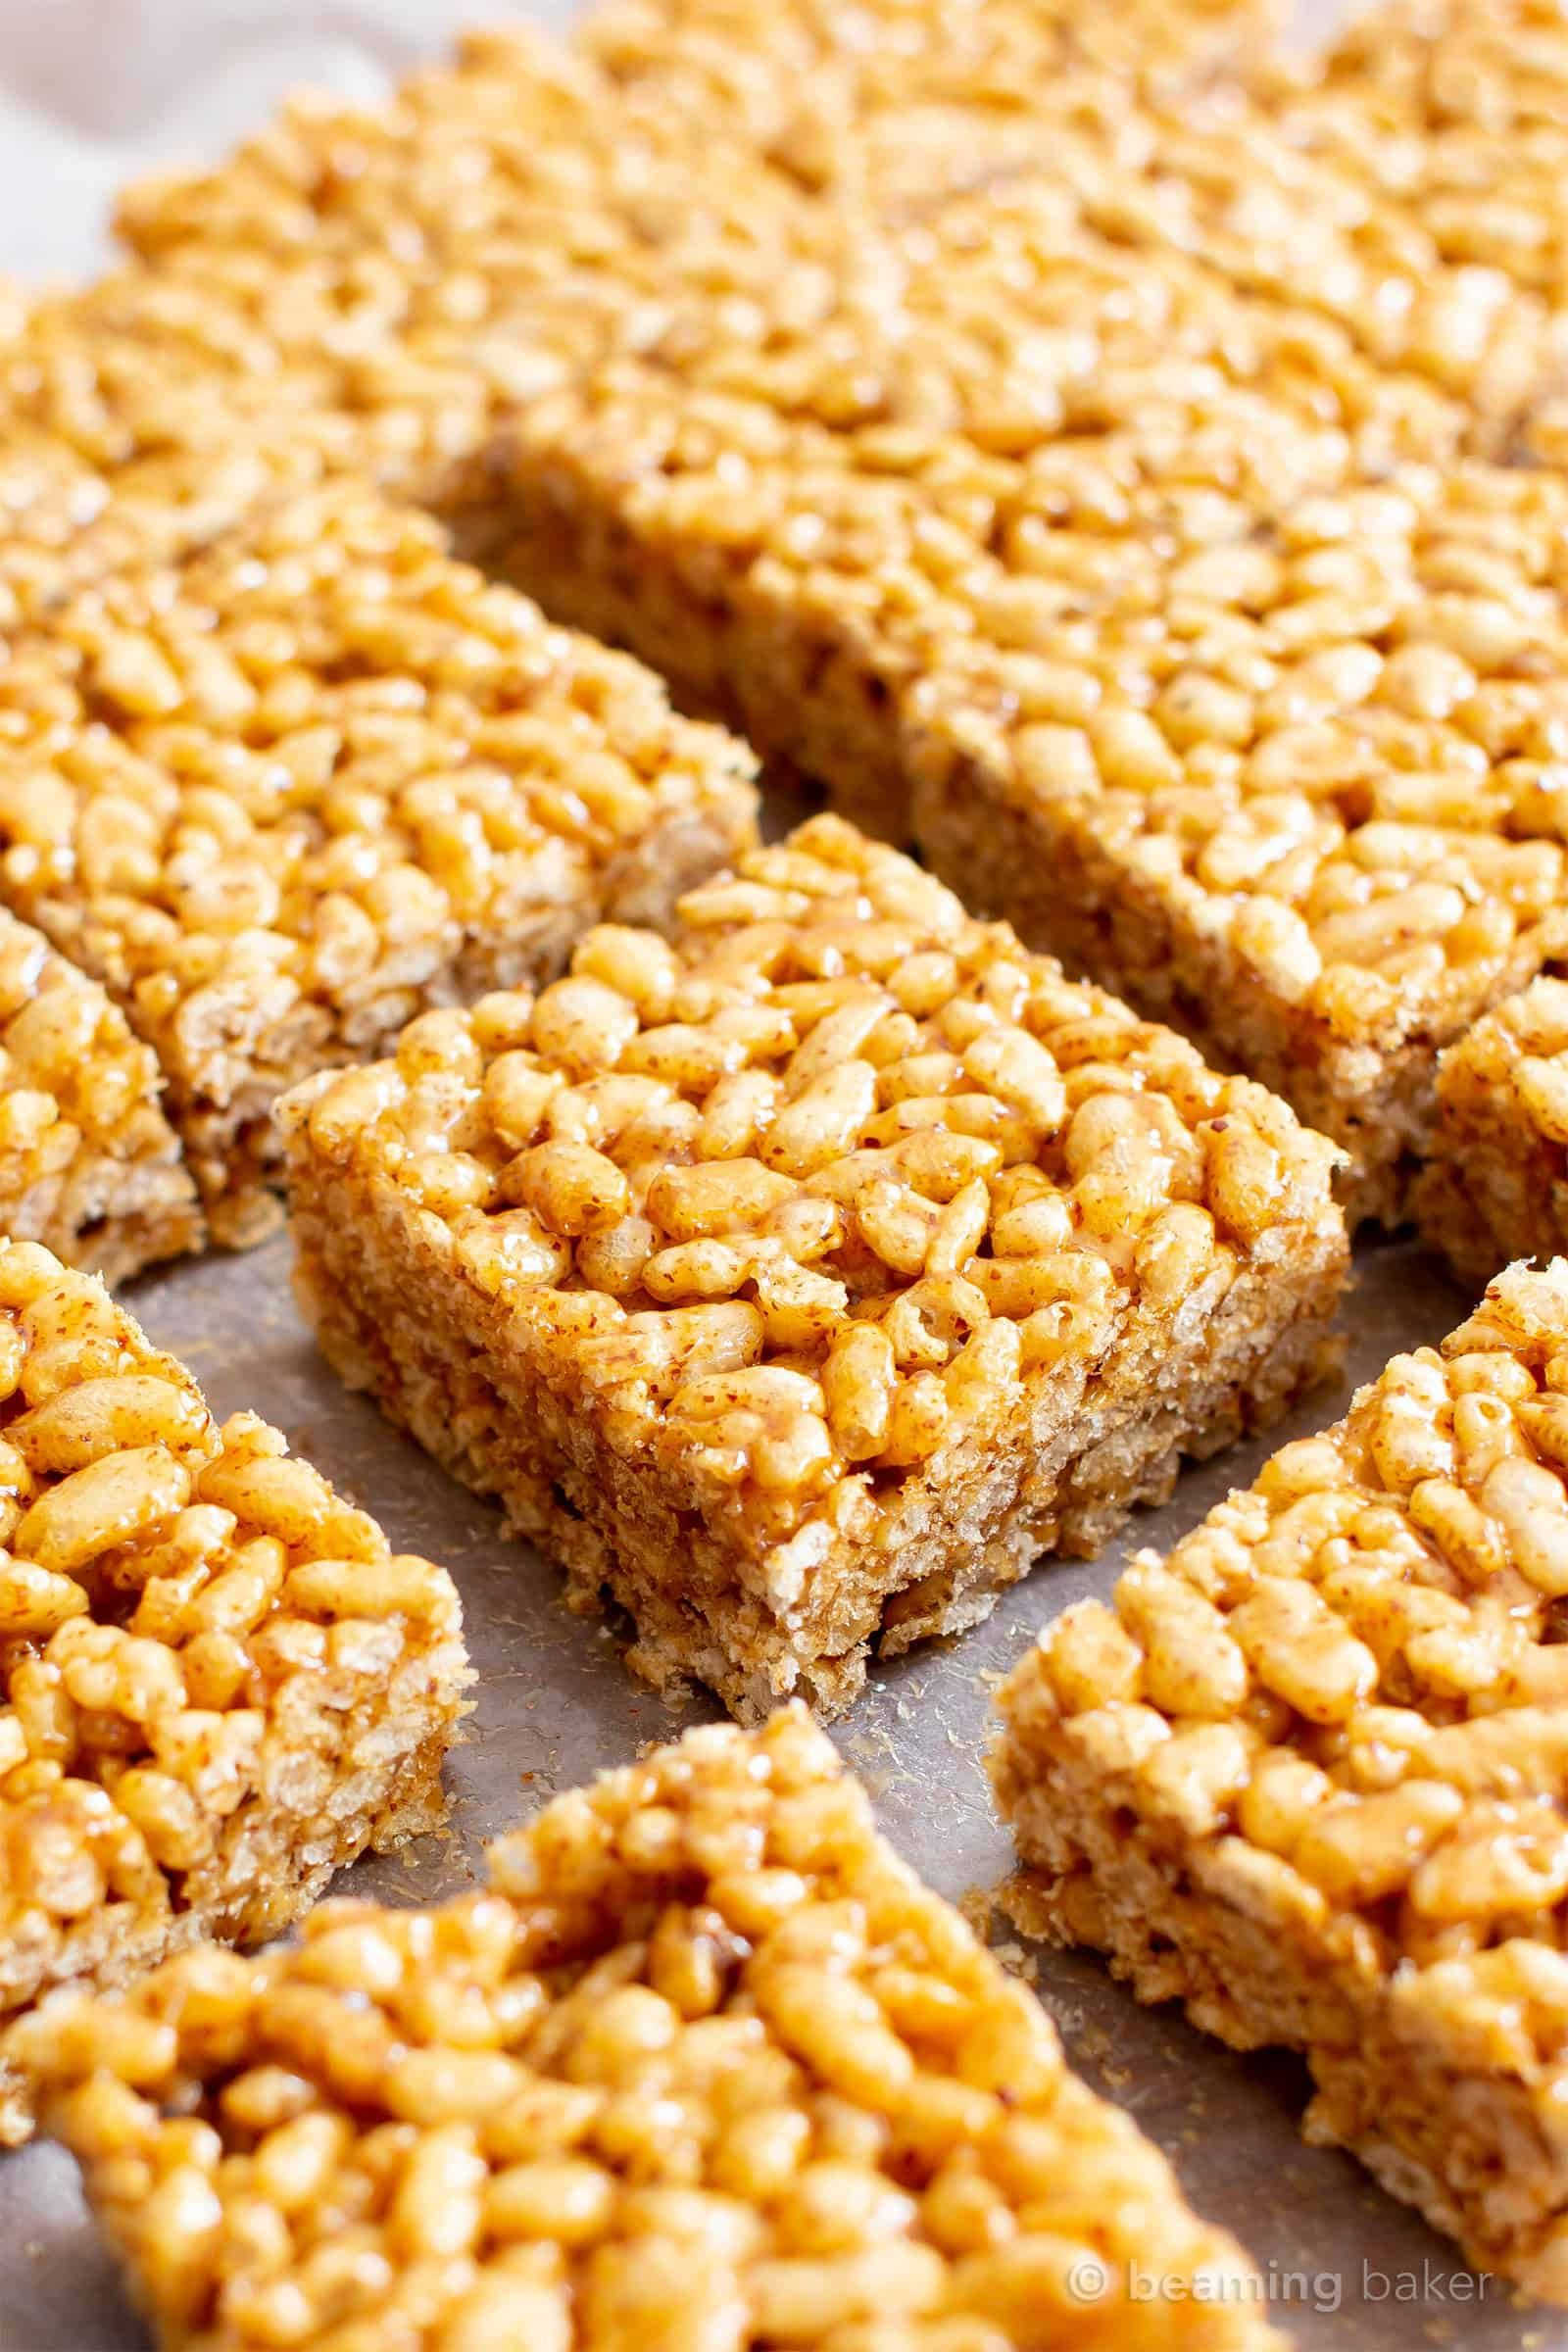 3 Ingredient Healthy Vegan Rice Crispy Treats (V, GF): a chewy homemade vegan rice krispy treats recipe, made with whole, gluten-free, protein-rich ingredients. #RiceCrispyTreats #ProteinPacked #Vegan #GlutenFree #CleanEating #Snacks #HealthySnacks | Recipe at BeamingBaker.com #crispytreats